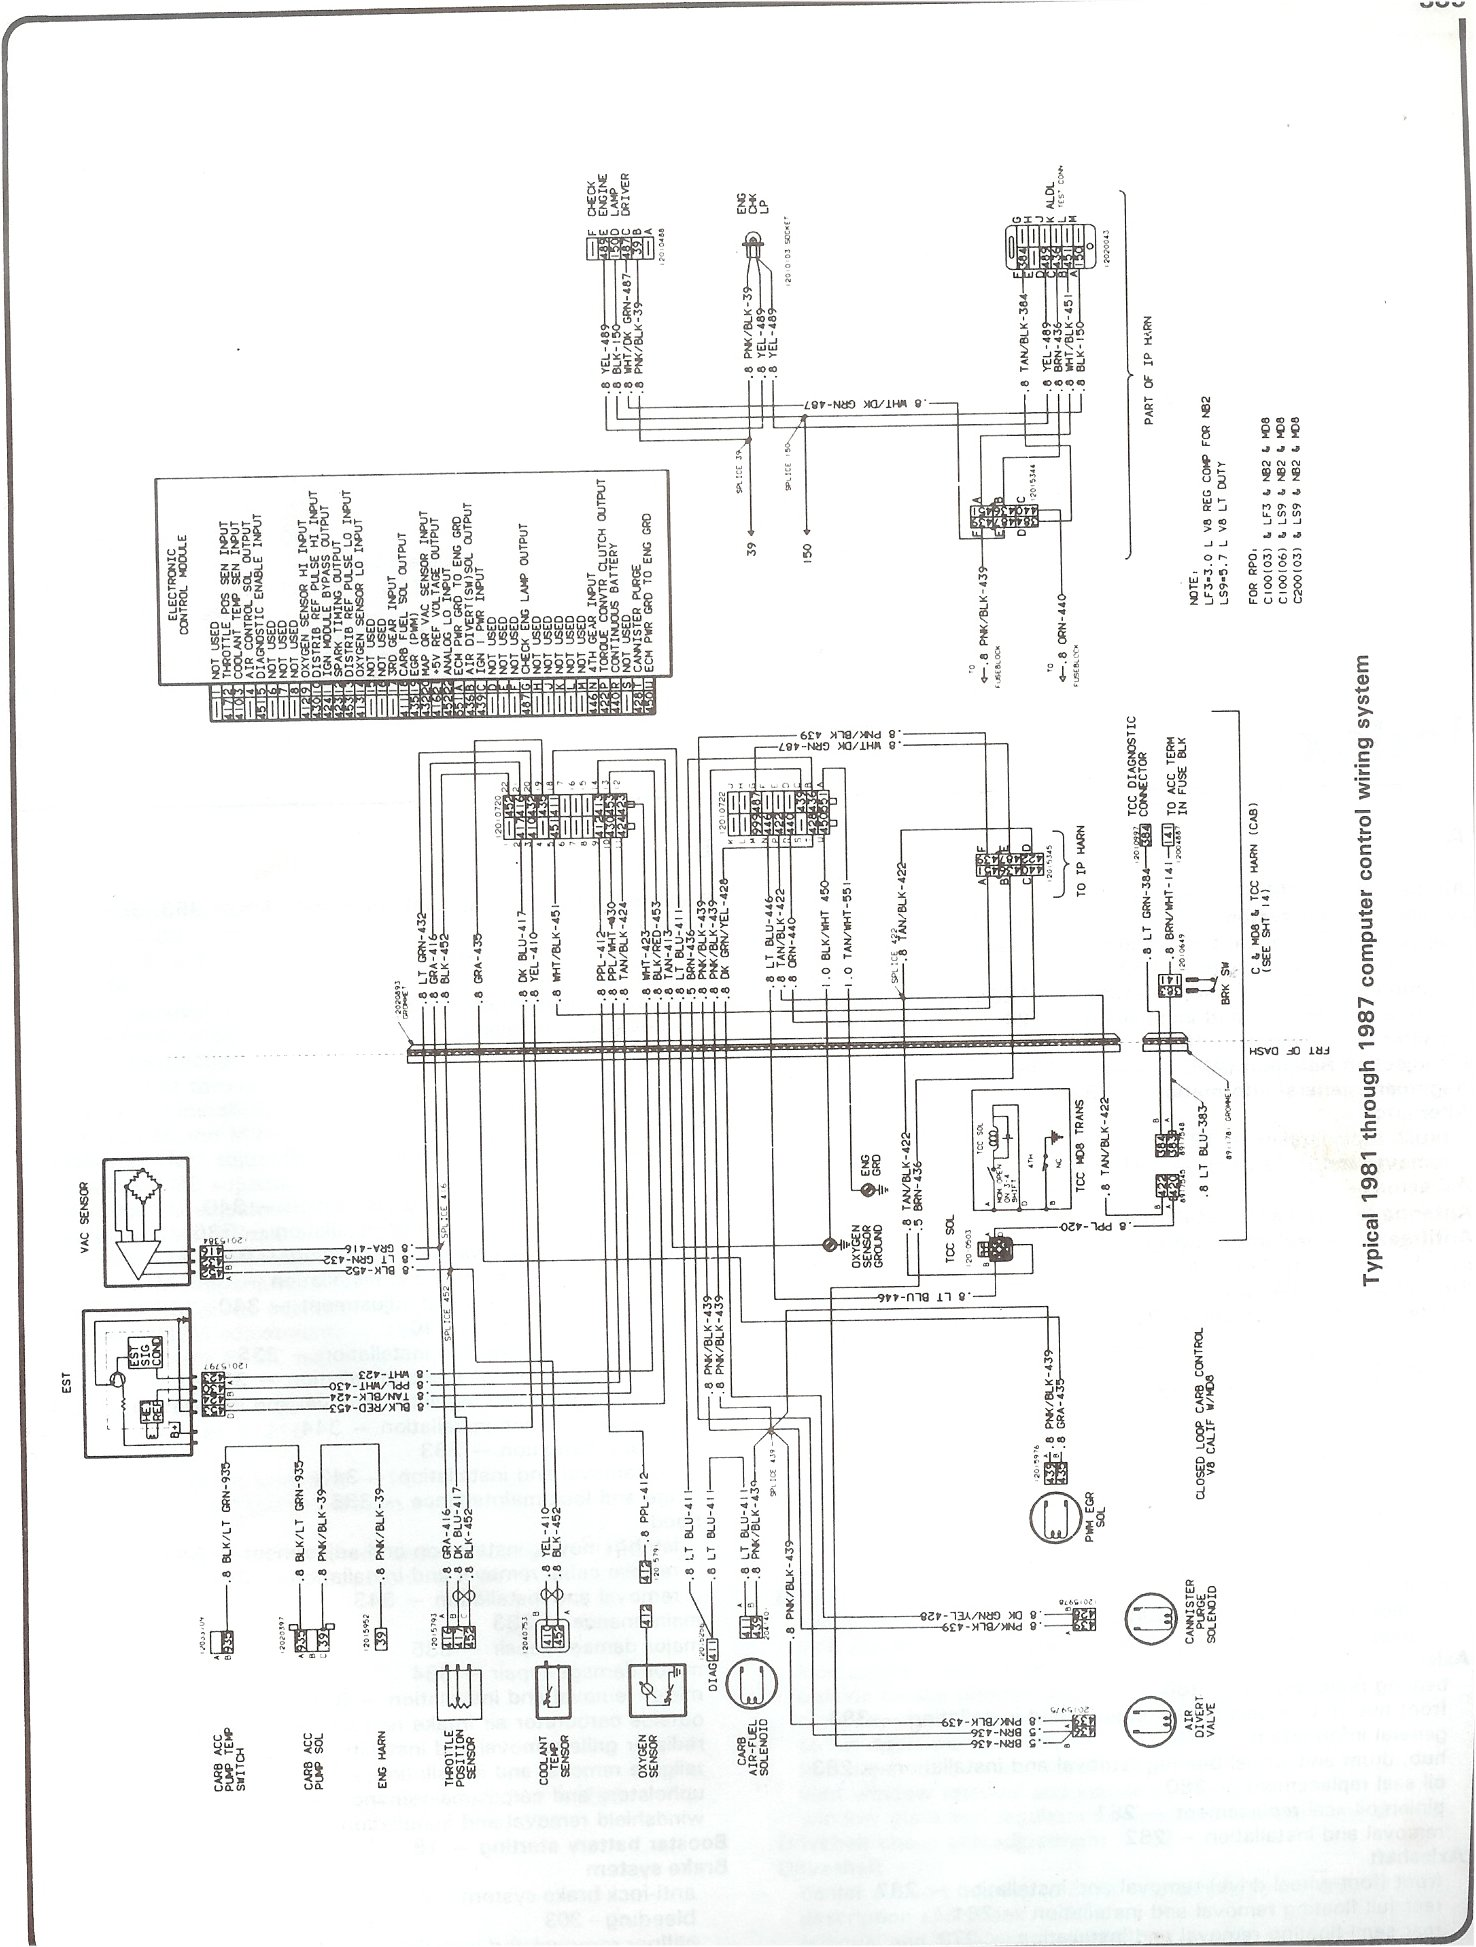 complete 73 87 wiring diagrams rh forum 73 87chevytrucks com 1968 C10 Wiring-Diagram 1982 chevy c10 radio wiring diagram